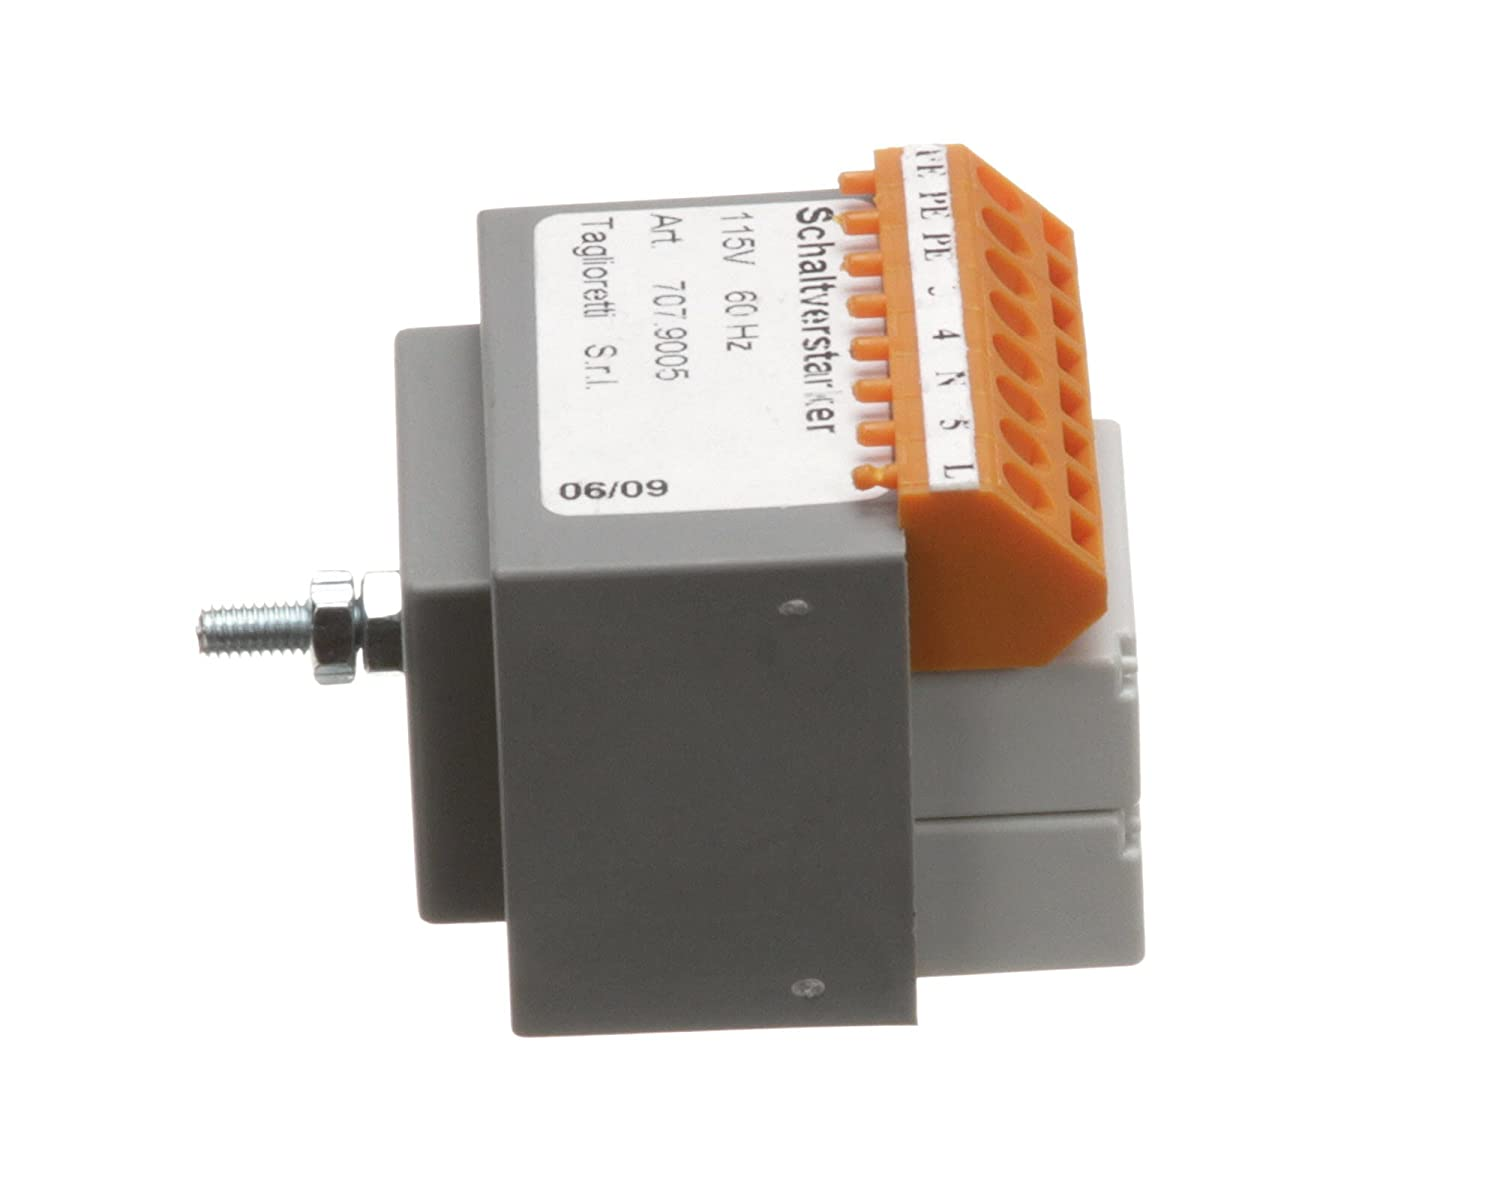 Image of Piper Products 707.09005 Switch Amplifier Basic Switches